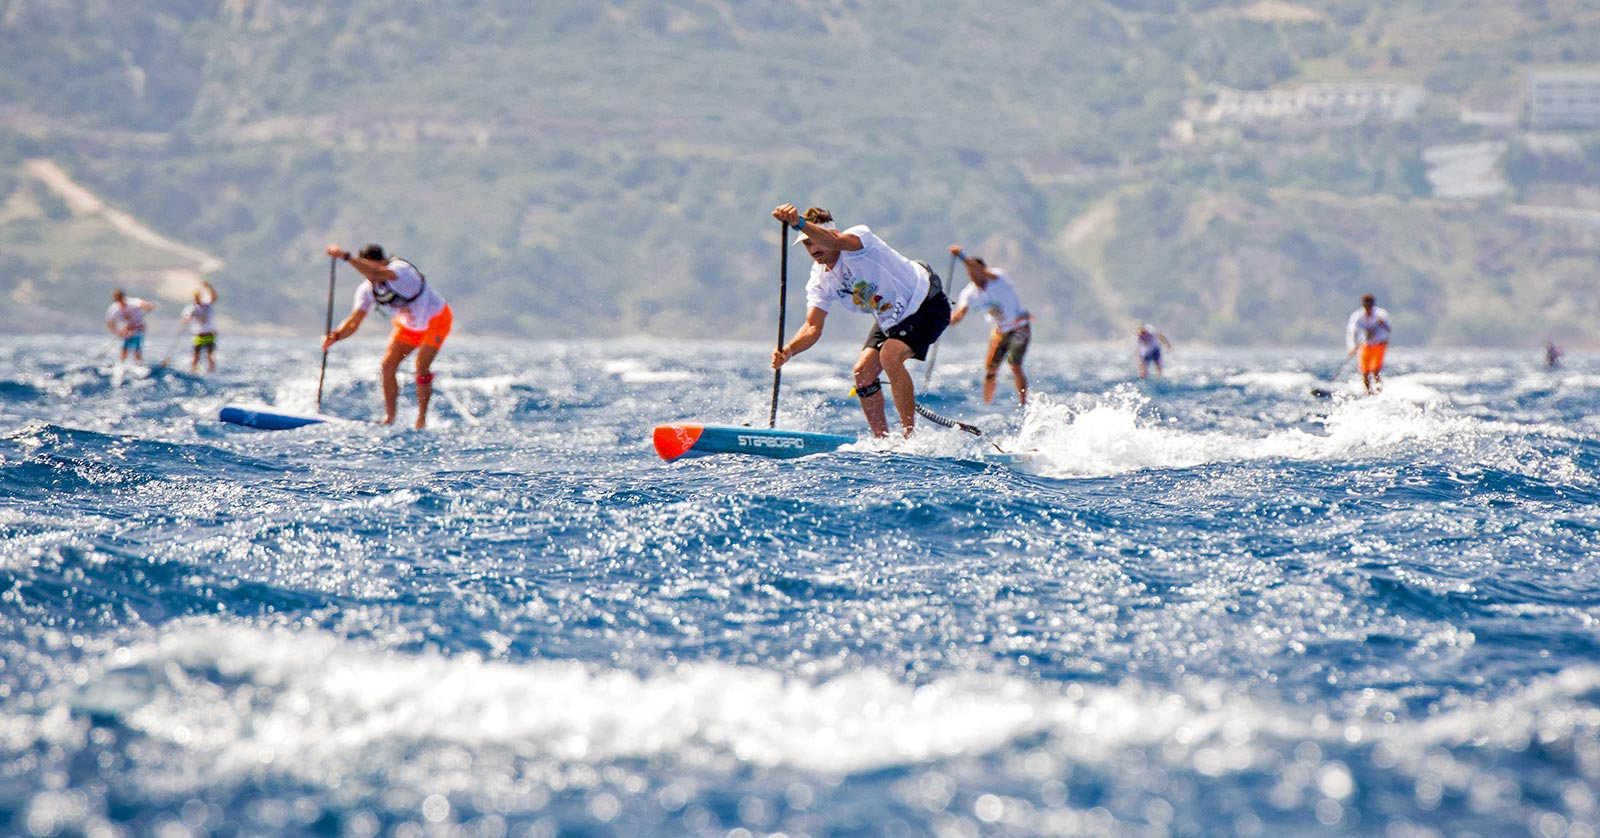 EuroTour-Greece-tag-@paddleleague-credit-@eurotoursup